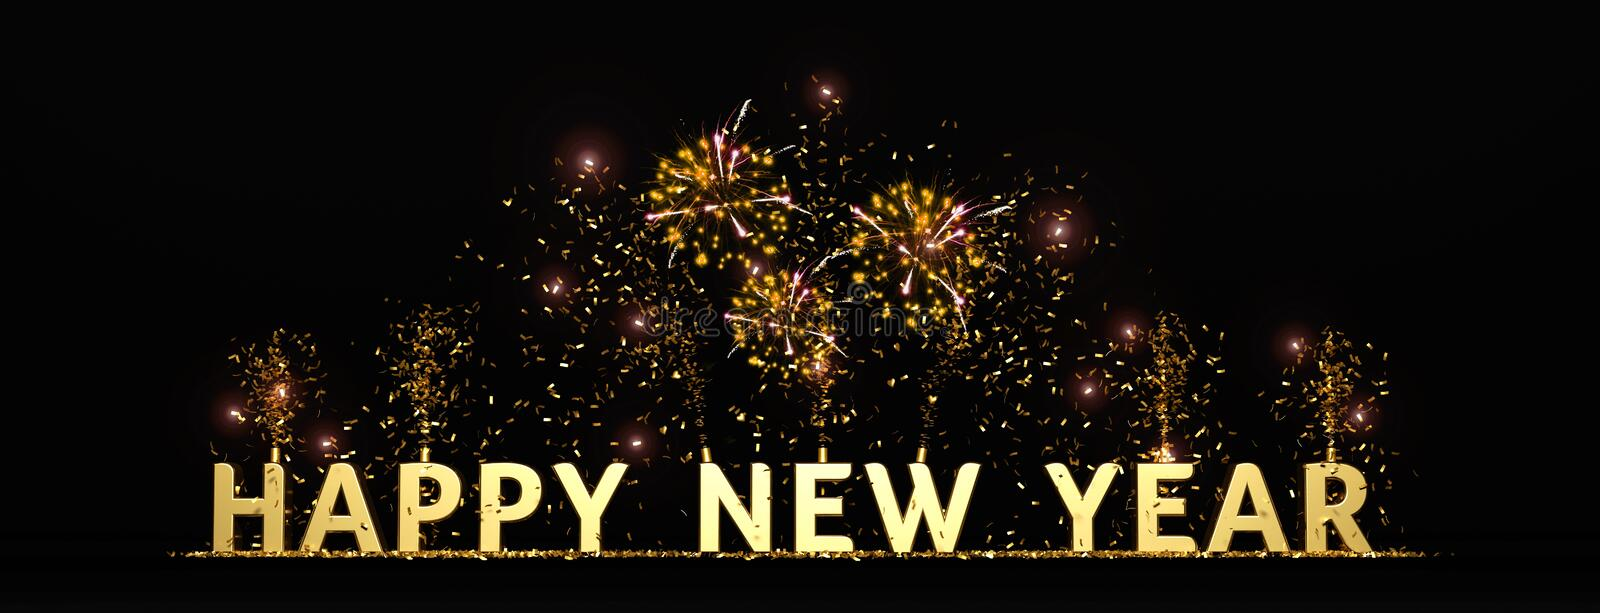 Happy new year 2020 illustration. Happy new year 2020 background with confettis vector illustration